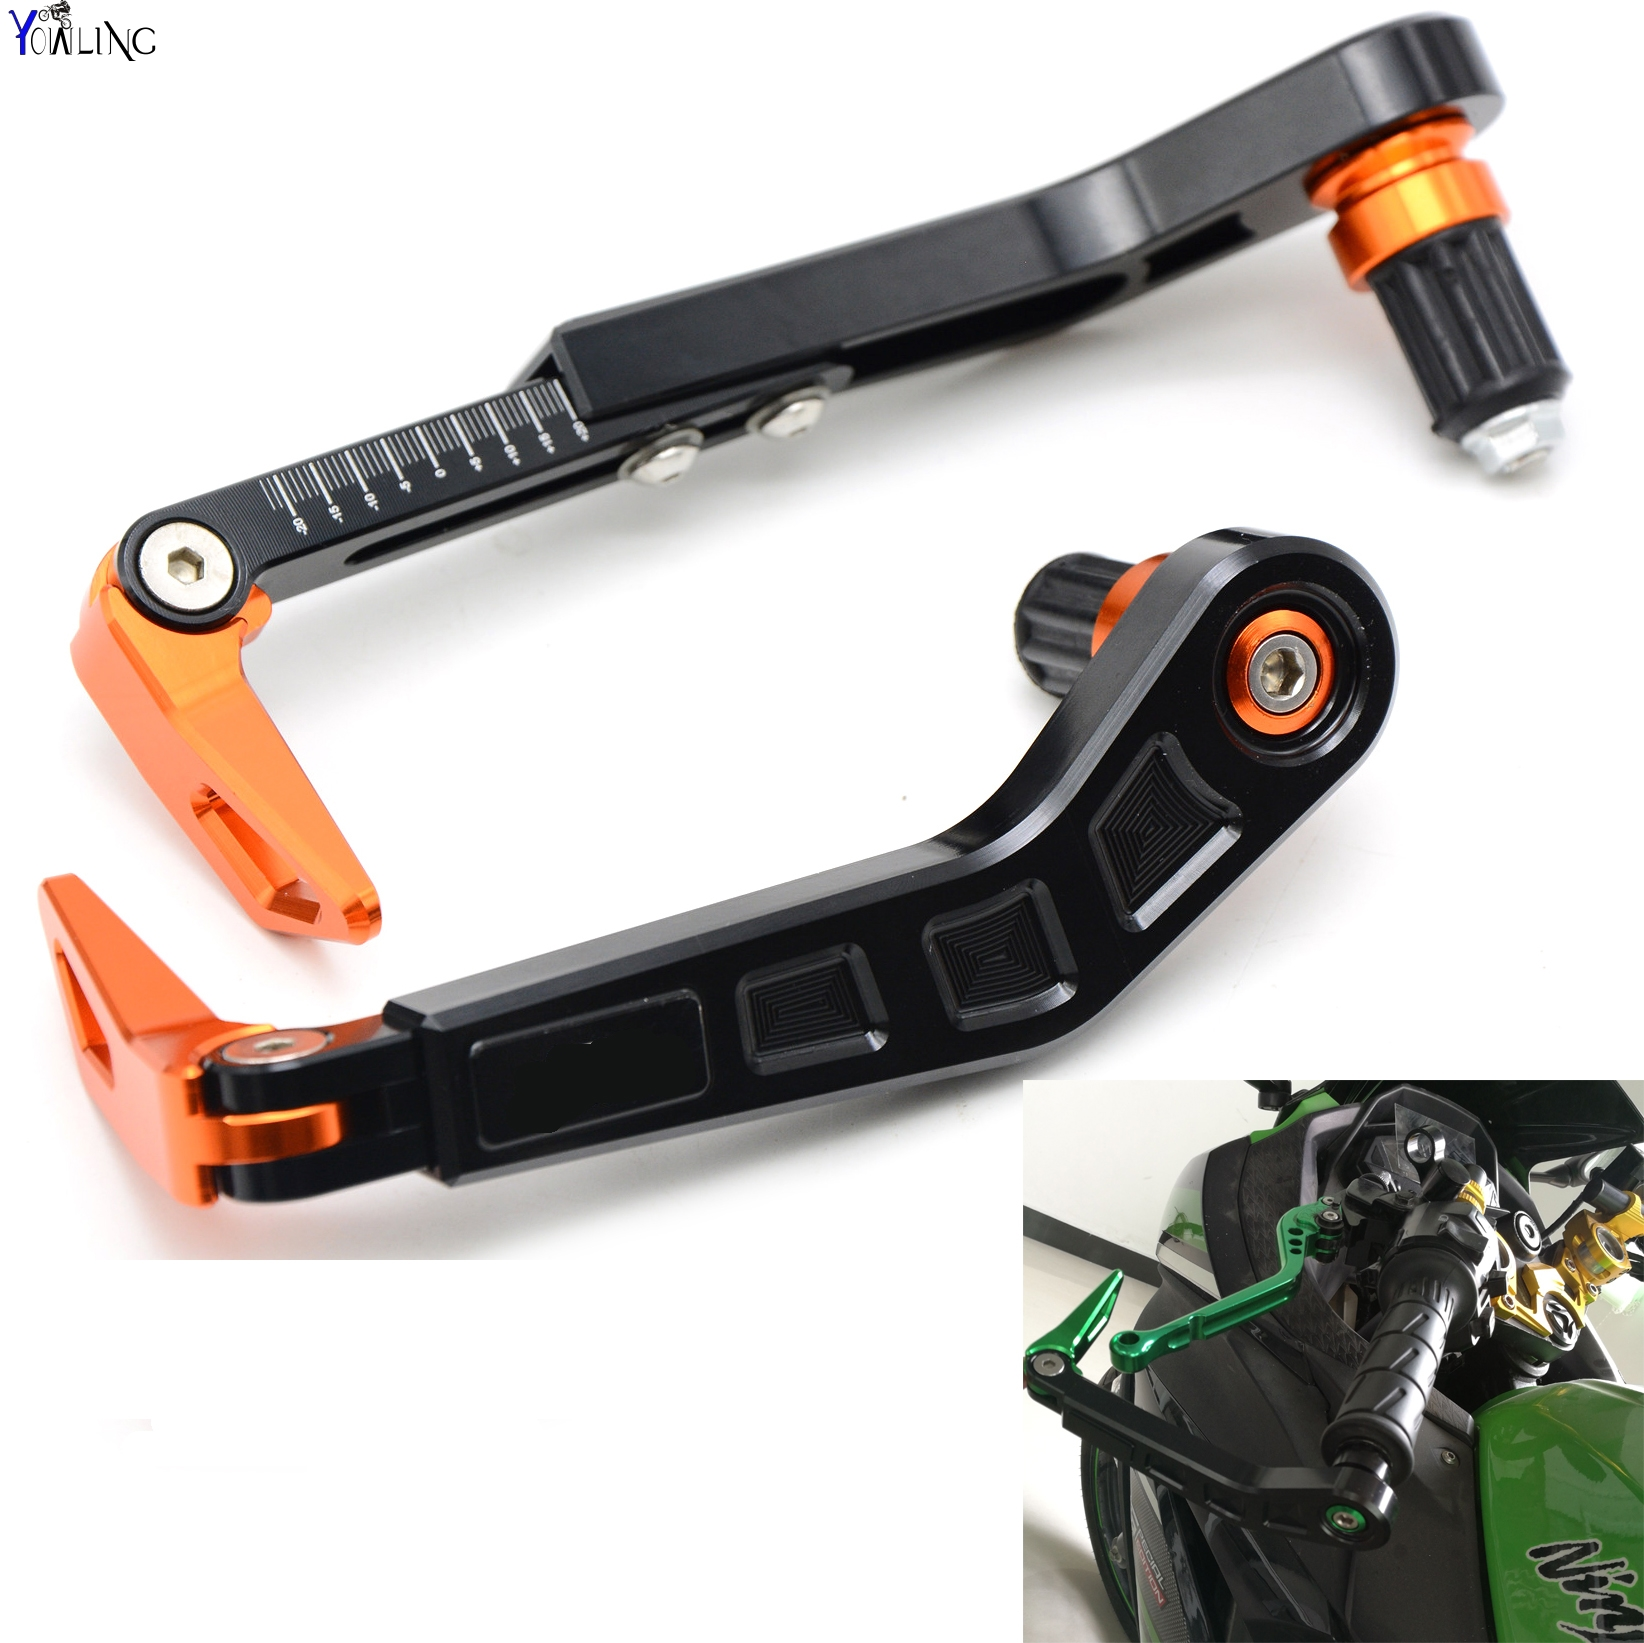 Universal 7/822mm Motorcycle Handlebar Brake Clutch Lever Guard for KTM 1050 1090 1190 1290 Adventure R RC8 Super Duke T ABS for 22mm 7 8 handlebar motorcycle dirt bike universal stunt clutch lever assembly cnc aluminum